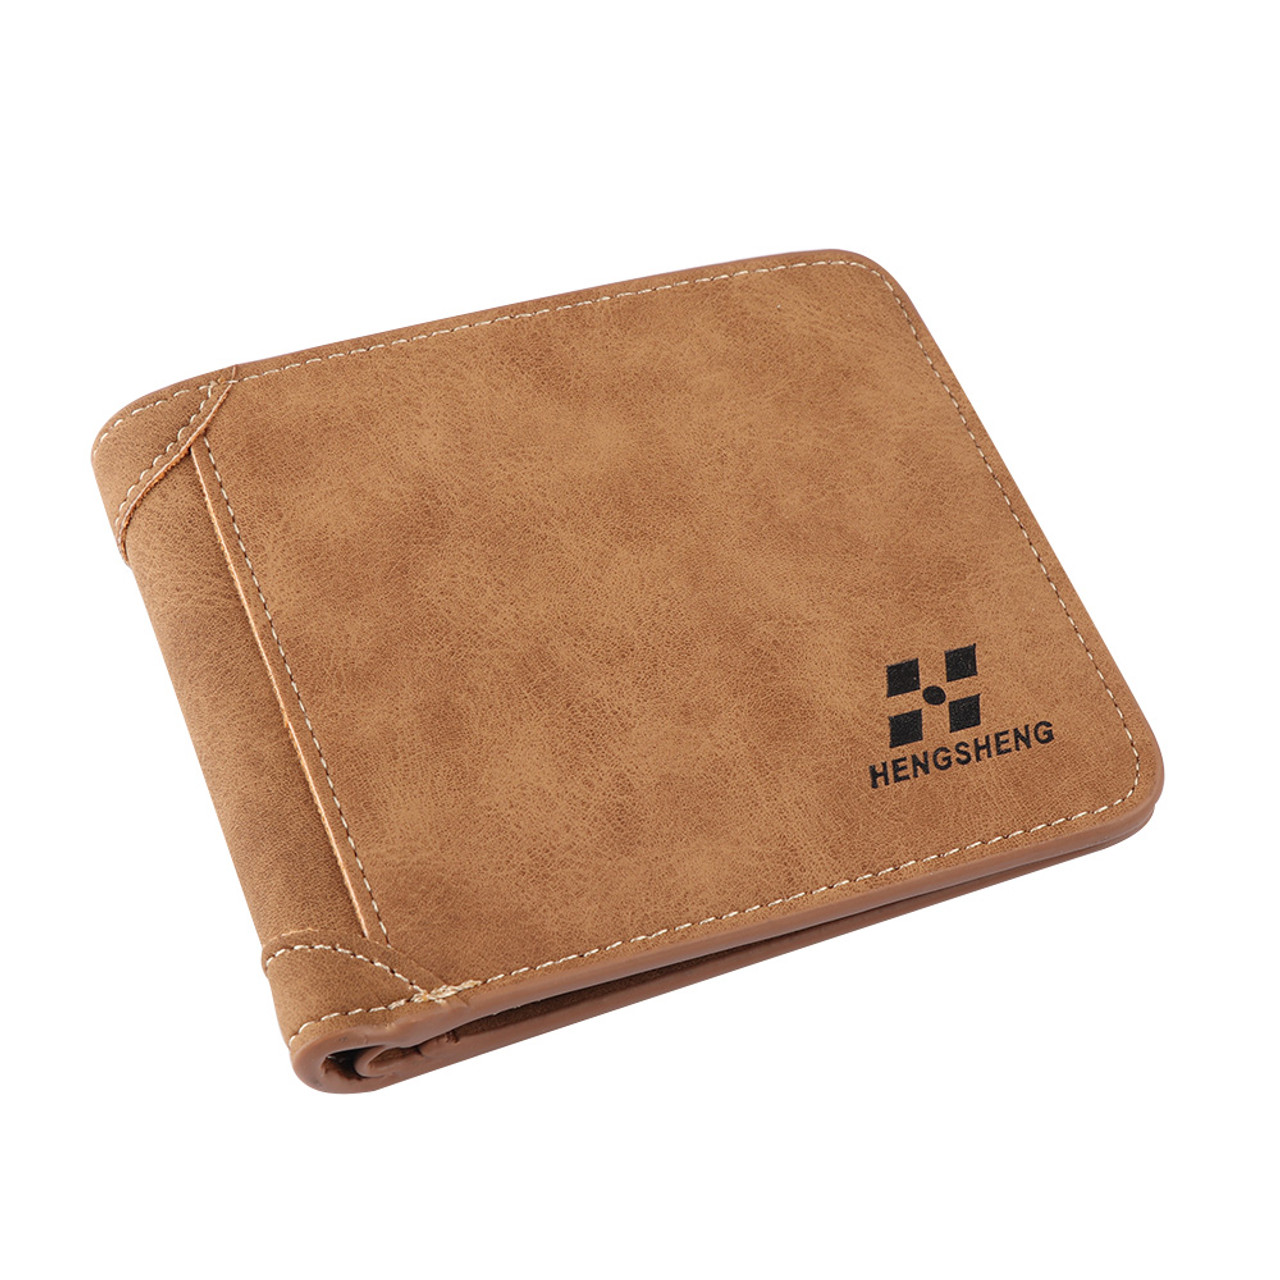 e891ae14a607 New fashion Men Portable PU Leather Purse Wallet ID Credit Card Holder  Clutch Bifold Coin Pockets ...